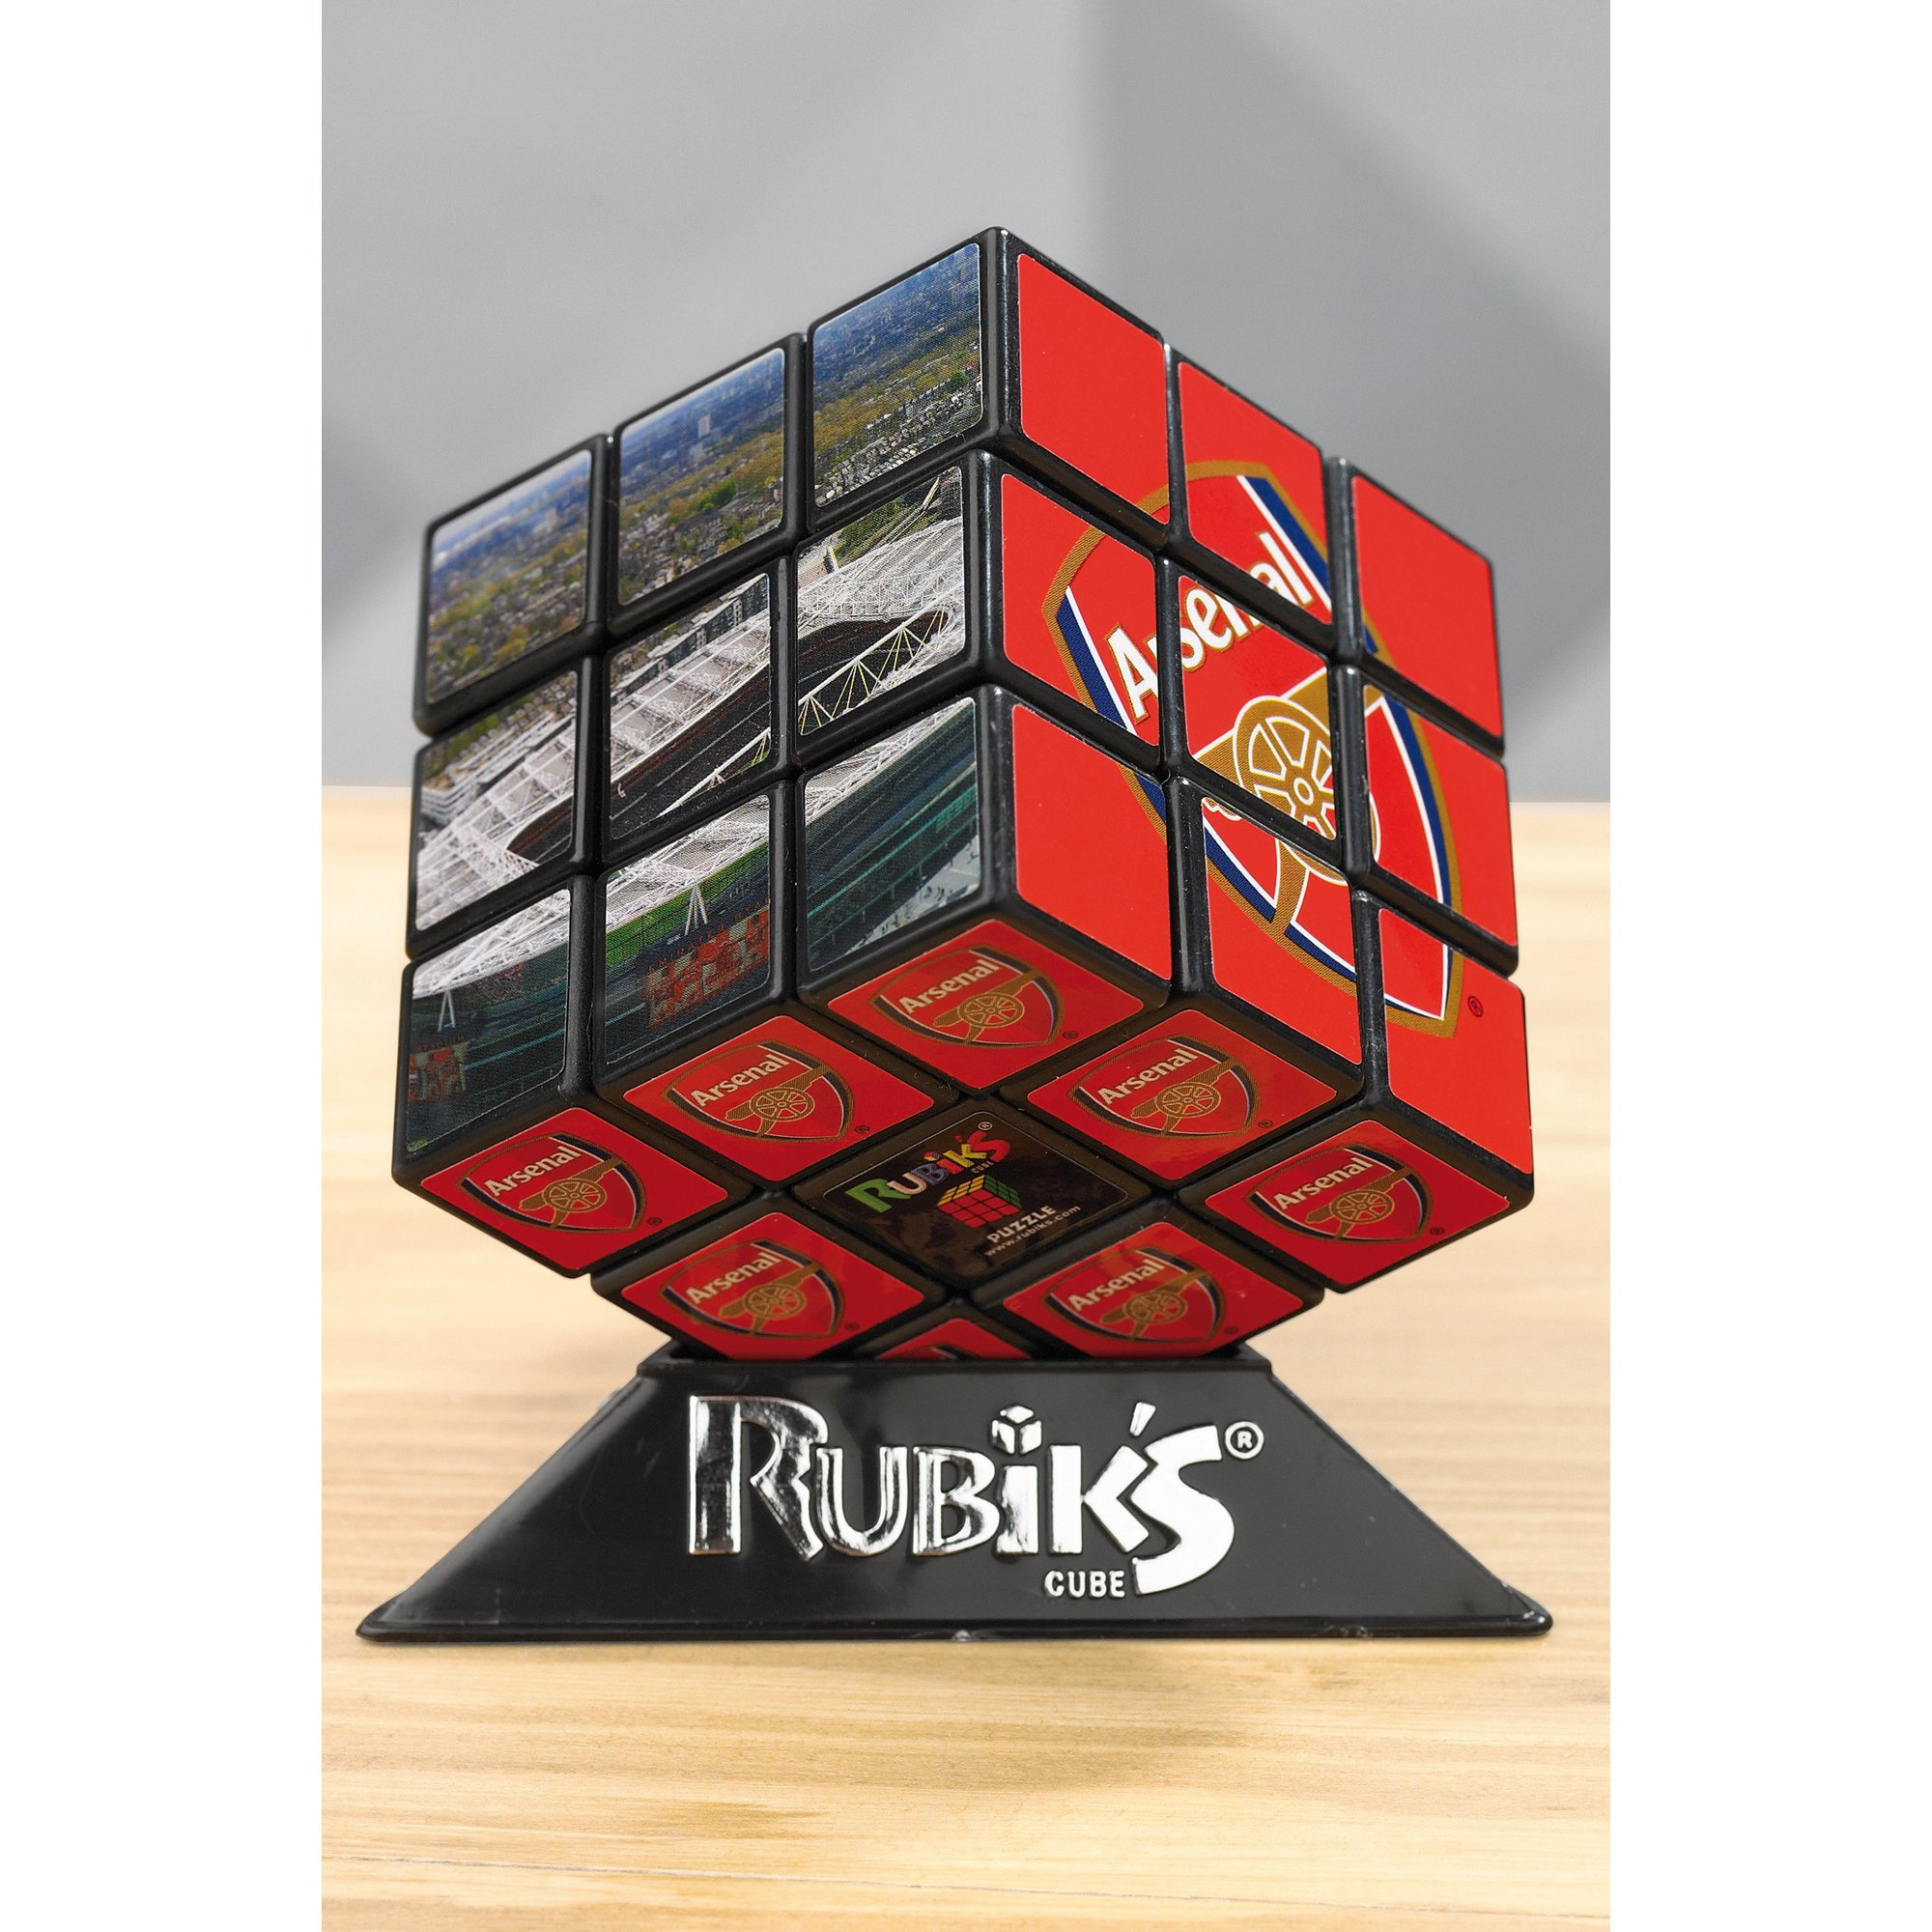 Image of Arsenal FC Rubiks Cube